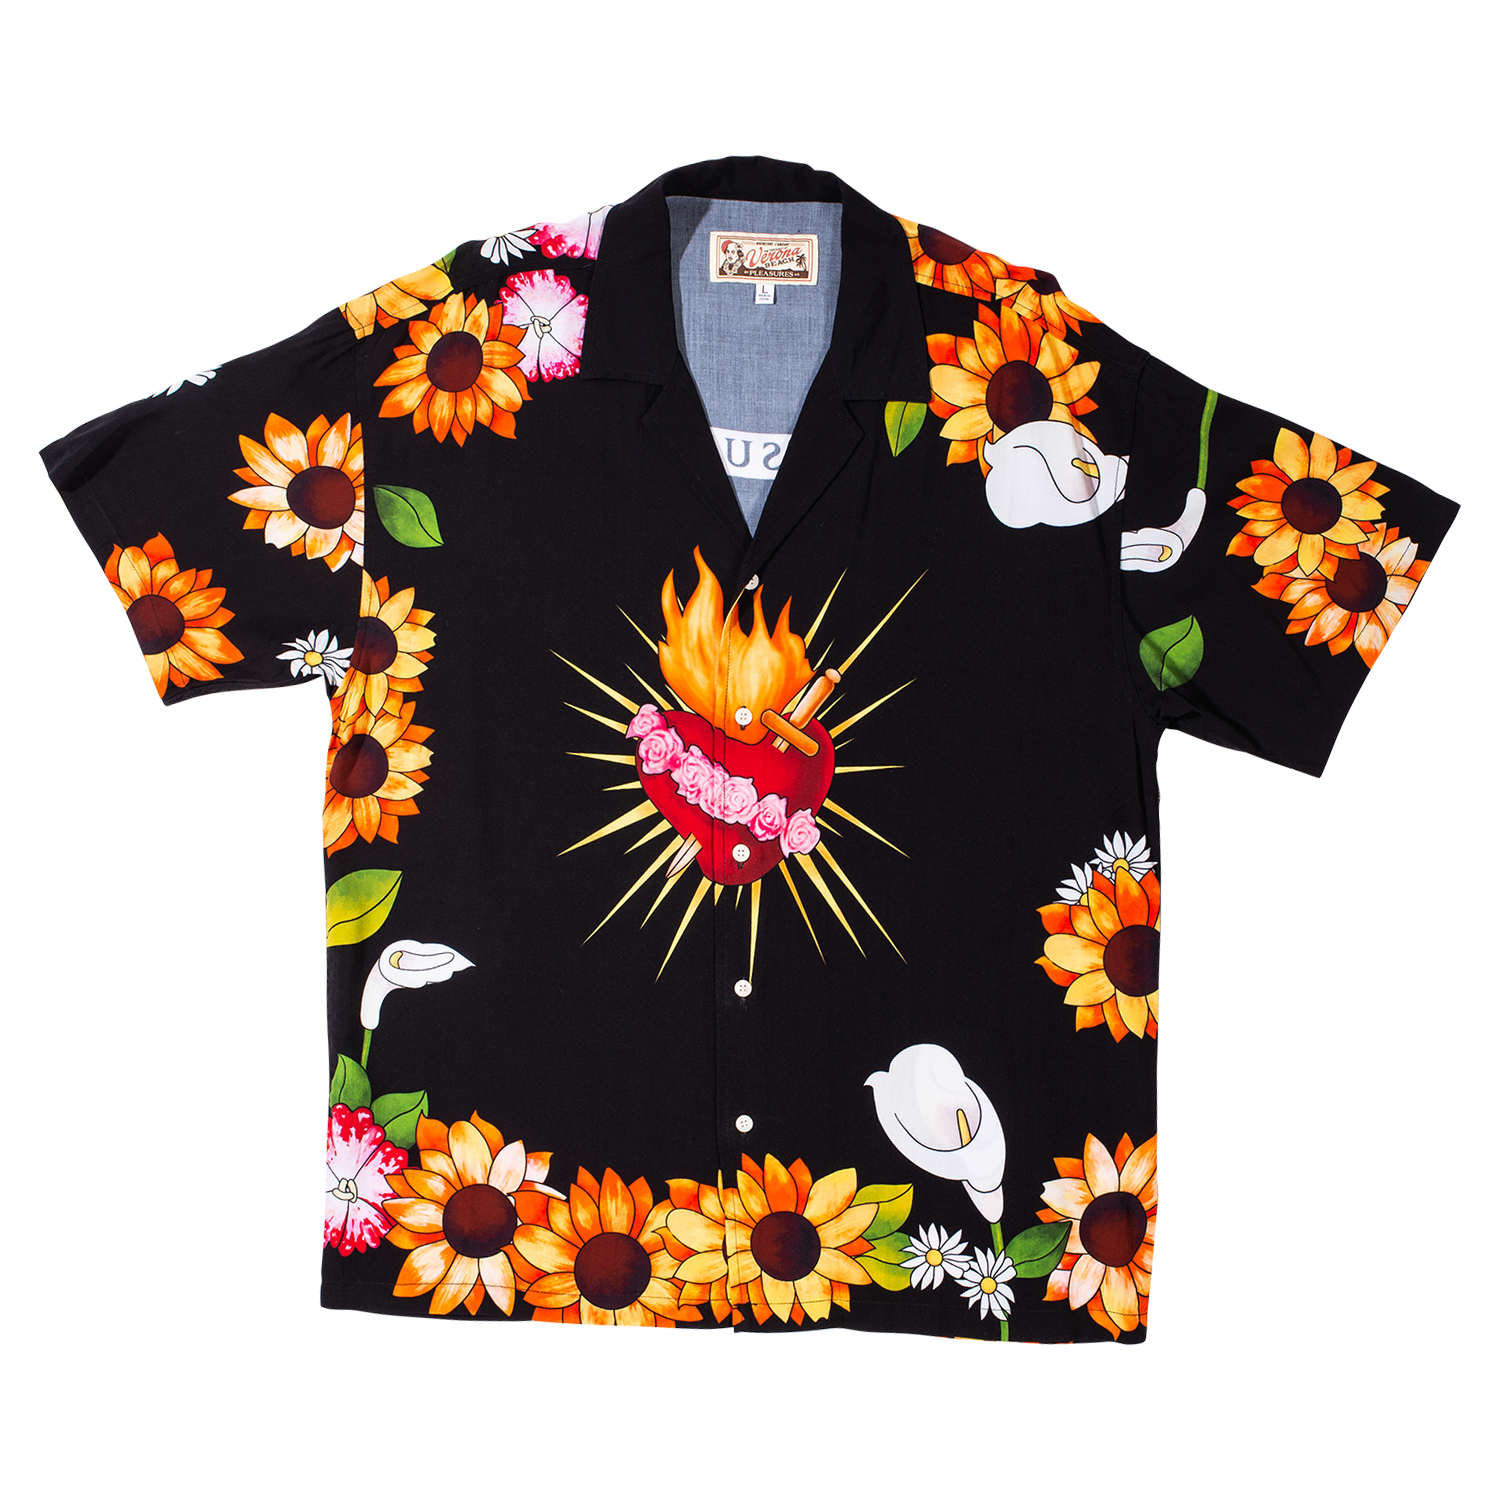 【PLEASURES/プレジャーズ】GANGSTER SHORT SLEEVE BUTTON UP 半袖シャツ / BLACK